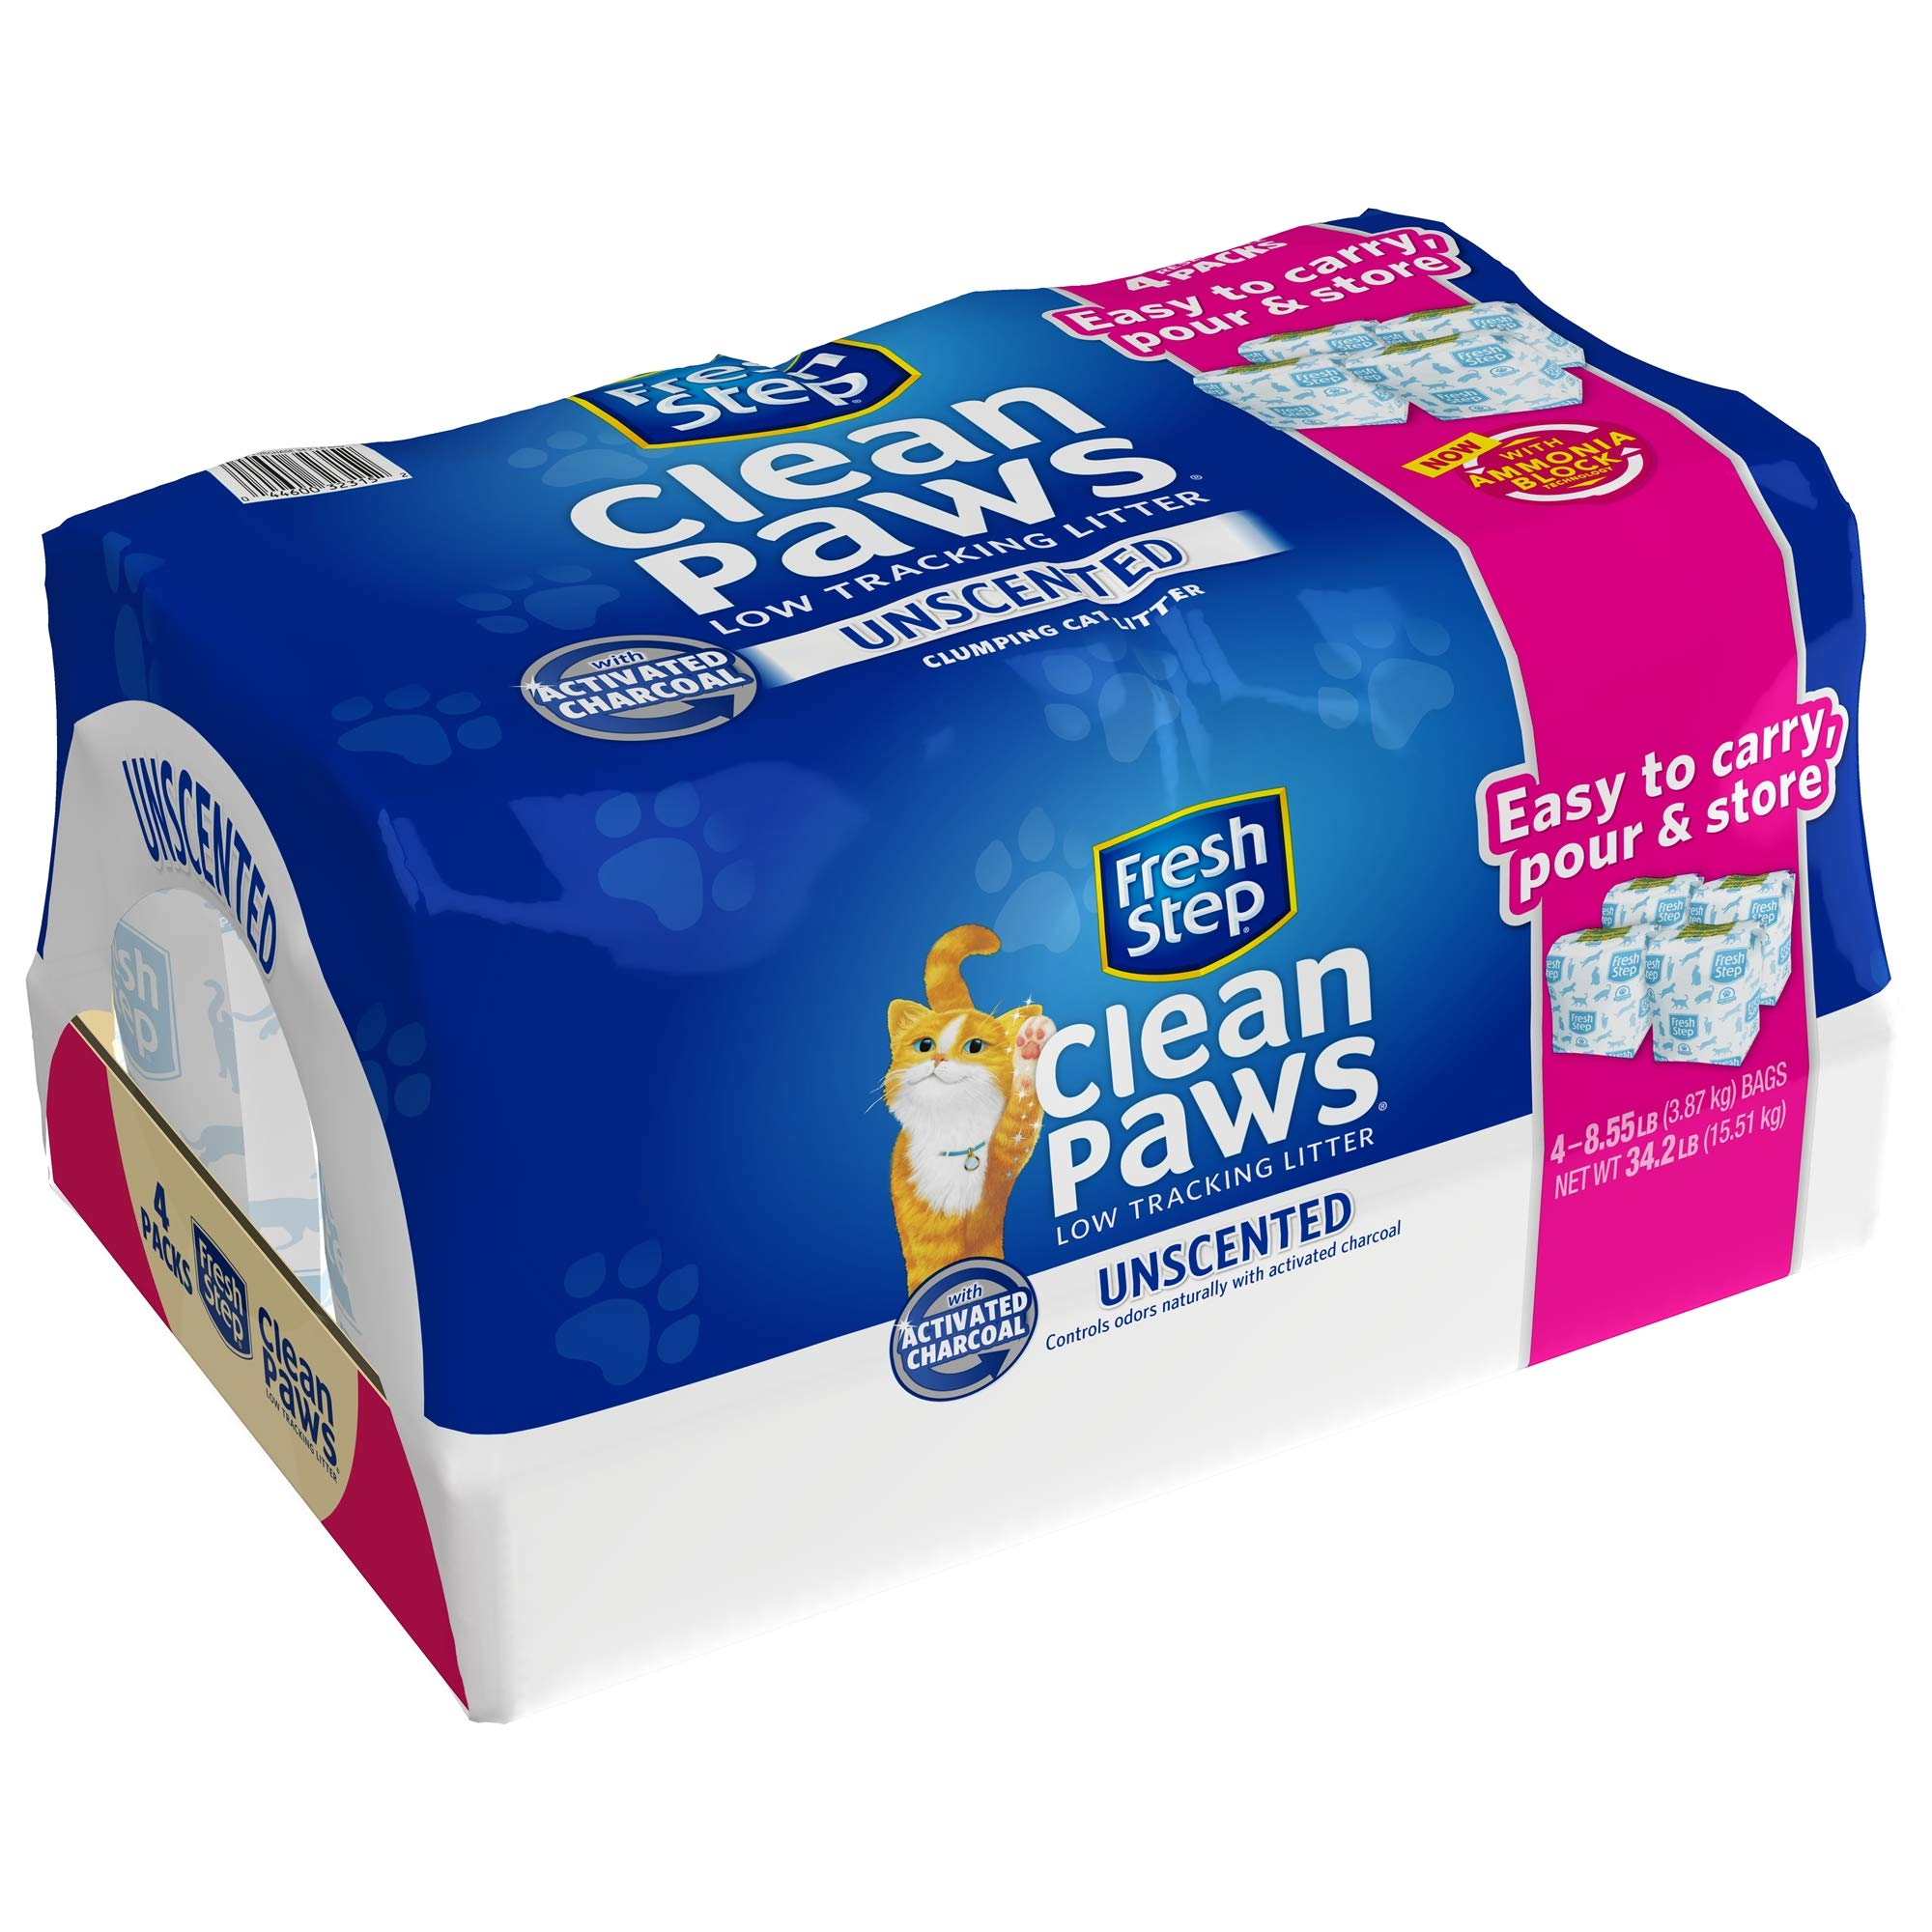 Fresh Step Clean Paws Unscented Low Tracking Clumping Cat Litter, 34.2 pounds